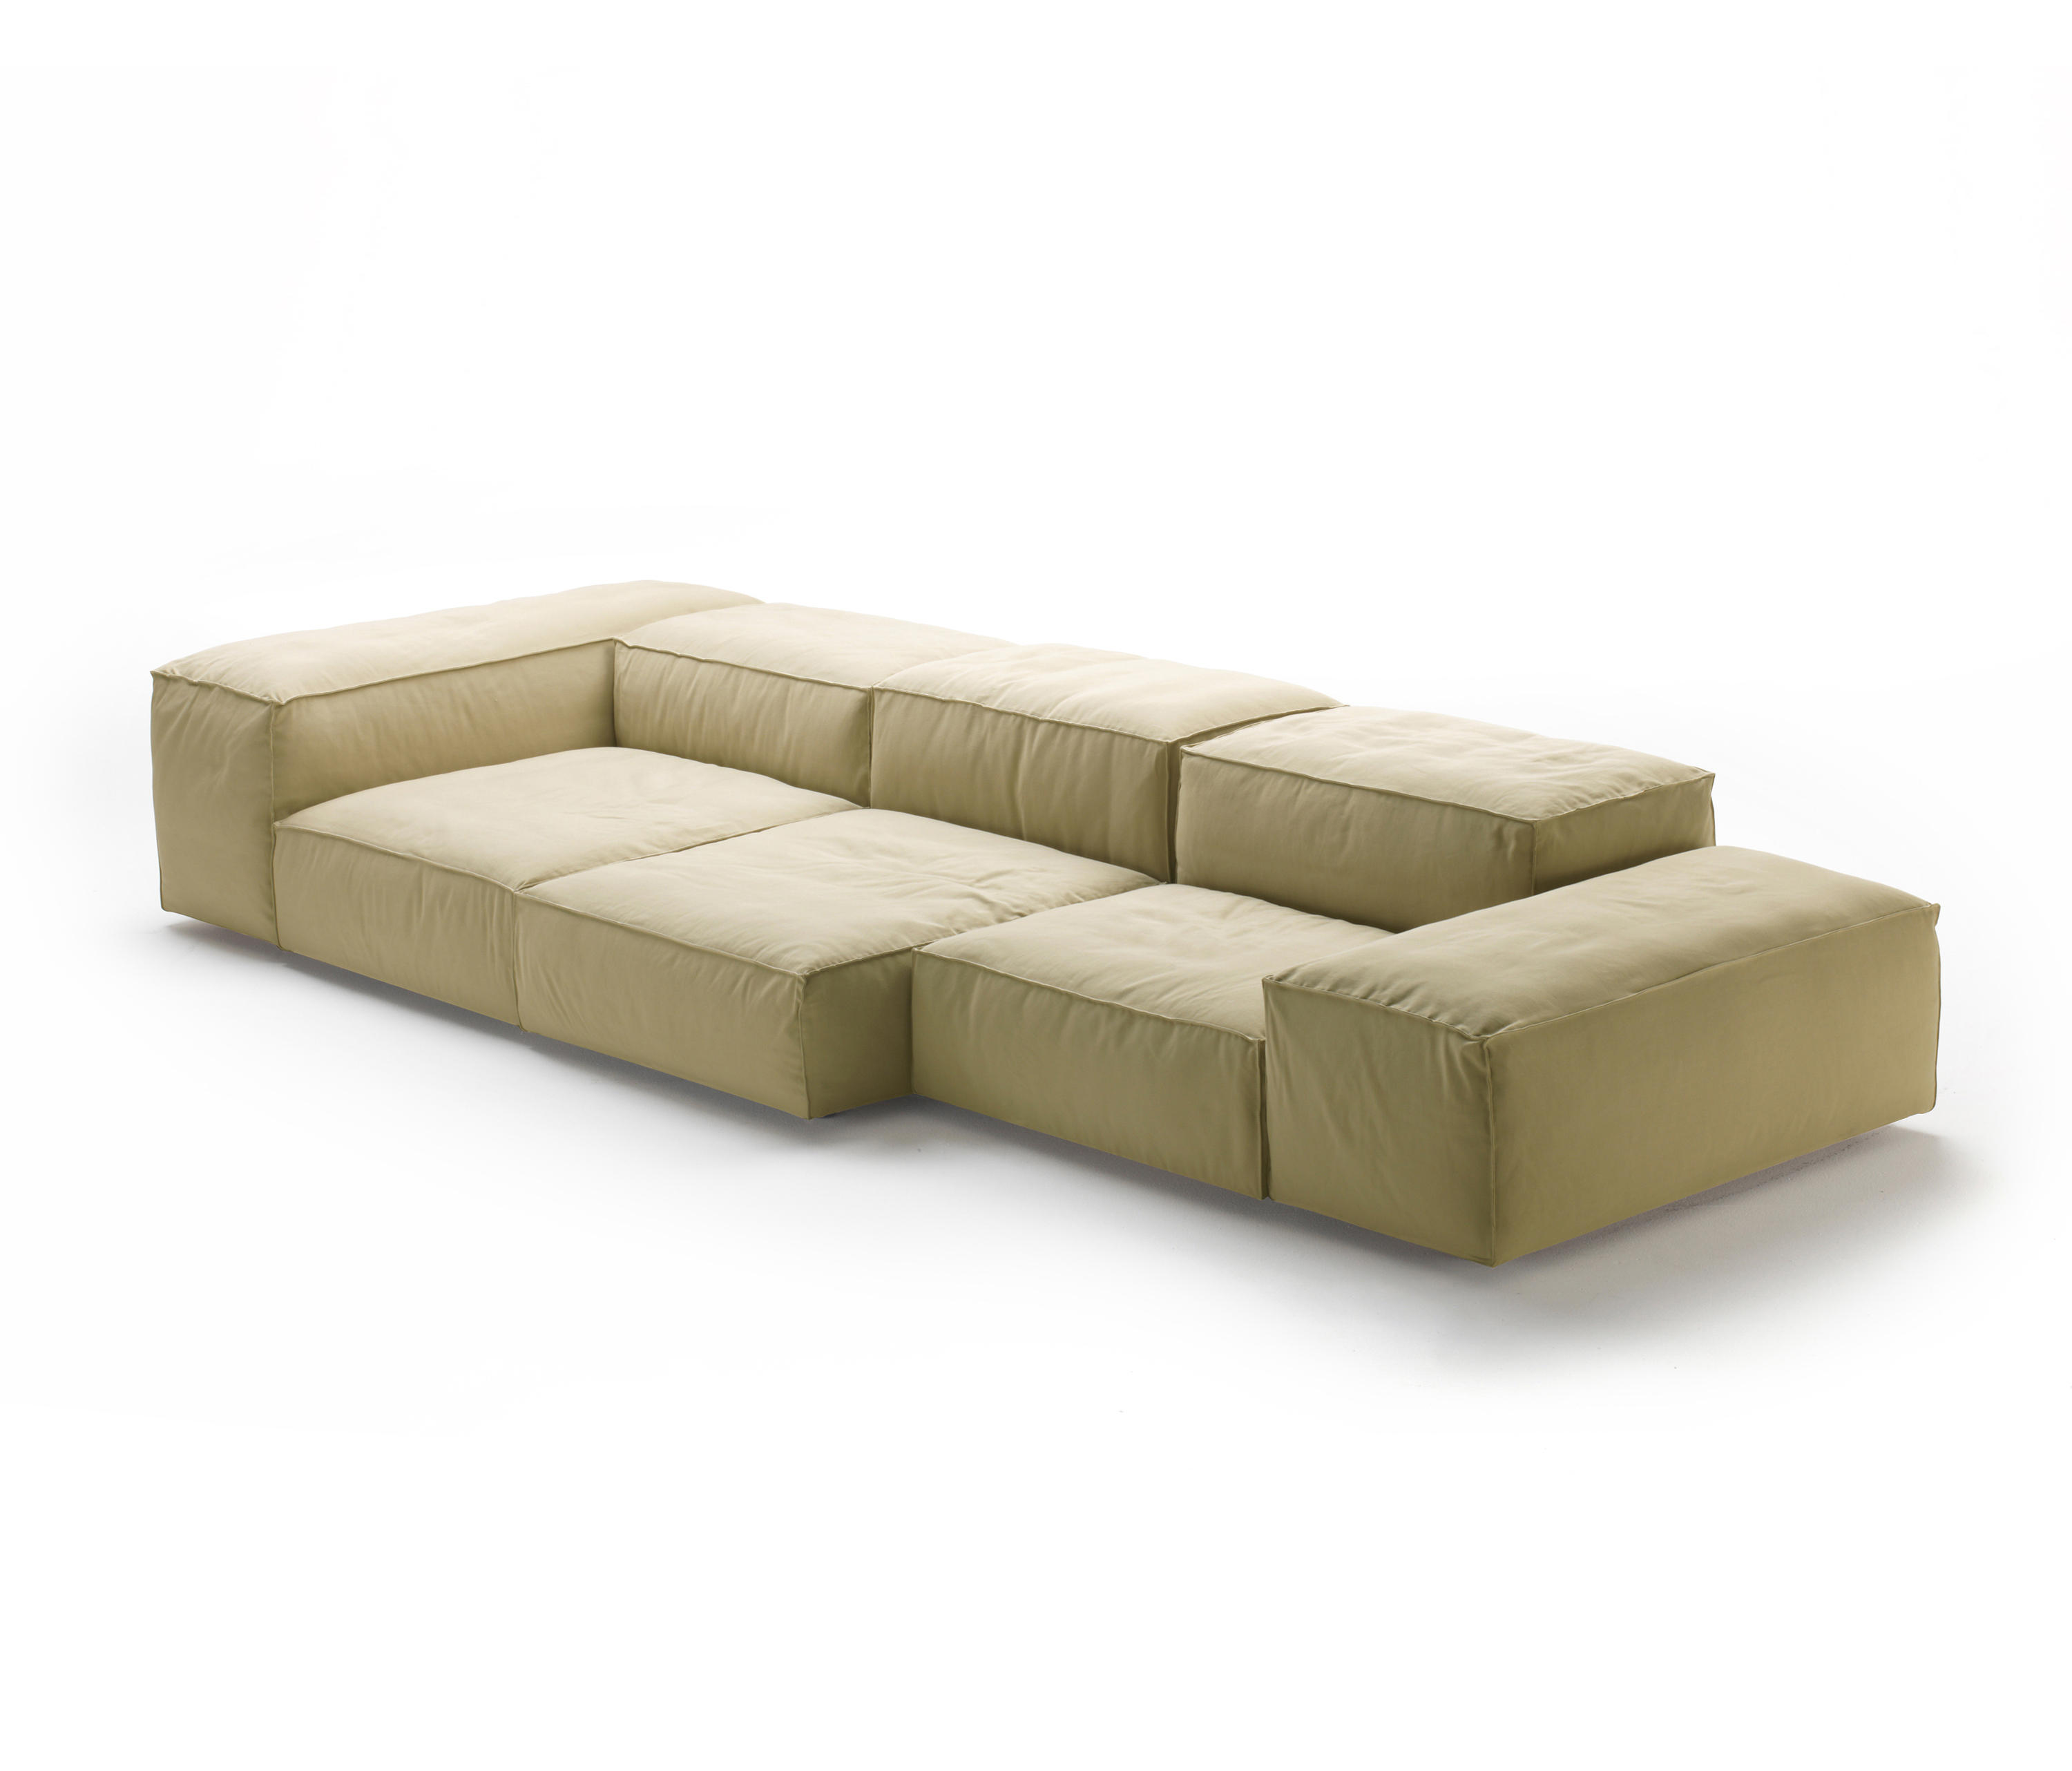 Living Divani Neowall Sofa Bed Extrasoft Sofas From Living Divani Architonic